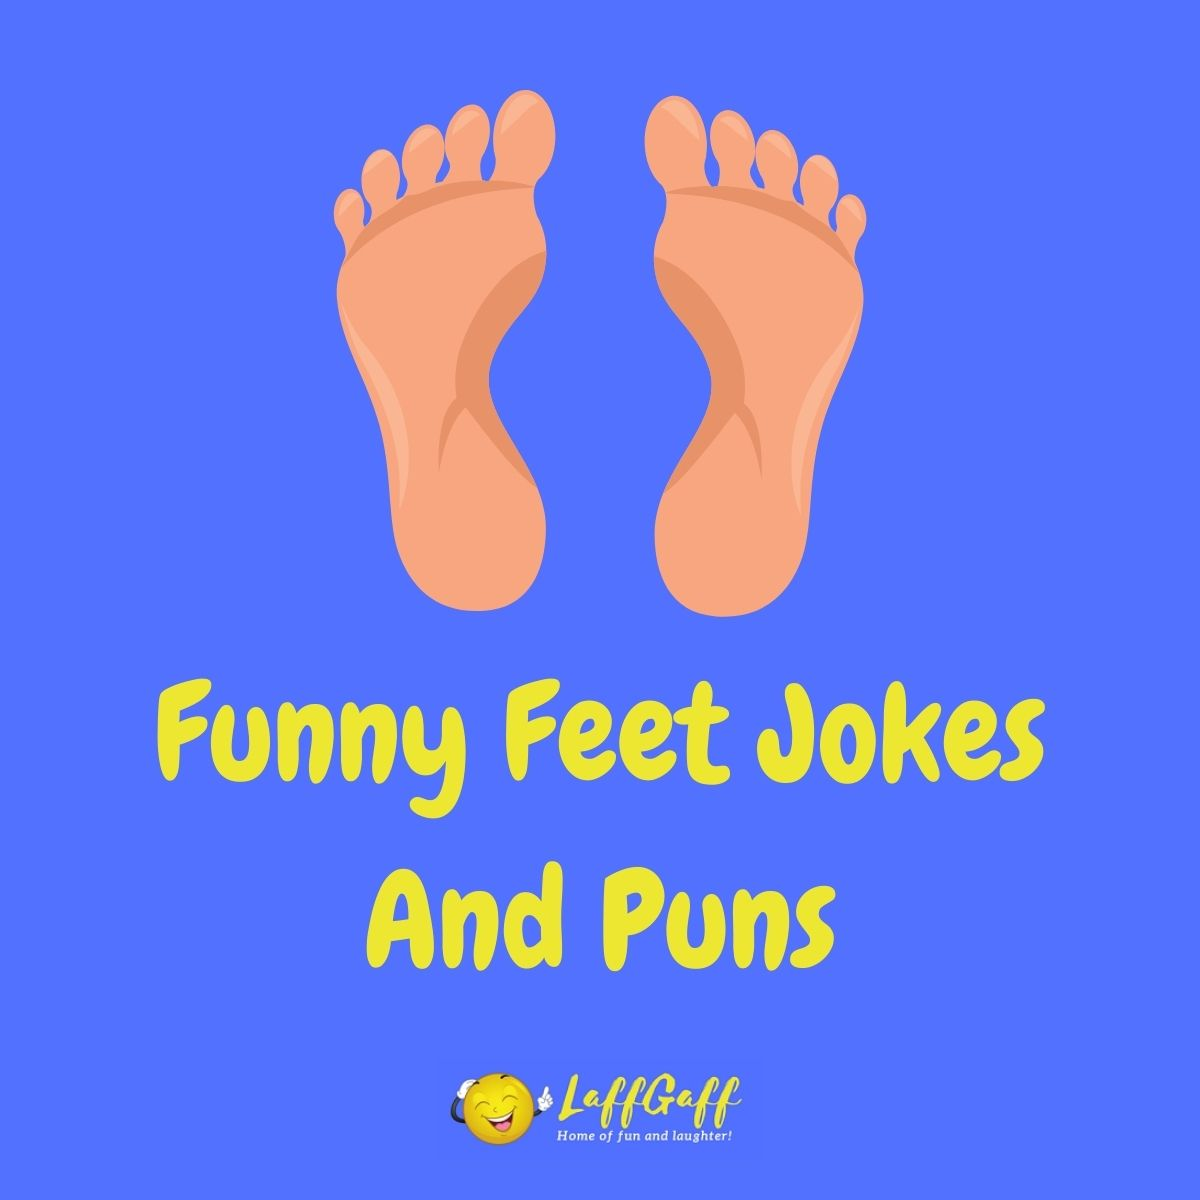 Featured image for a page of funny feet jokes and puns.